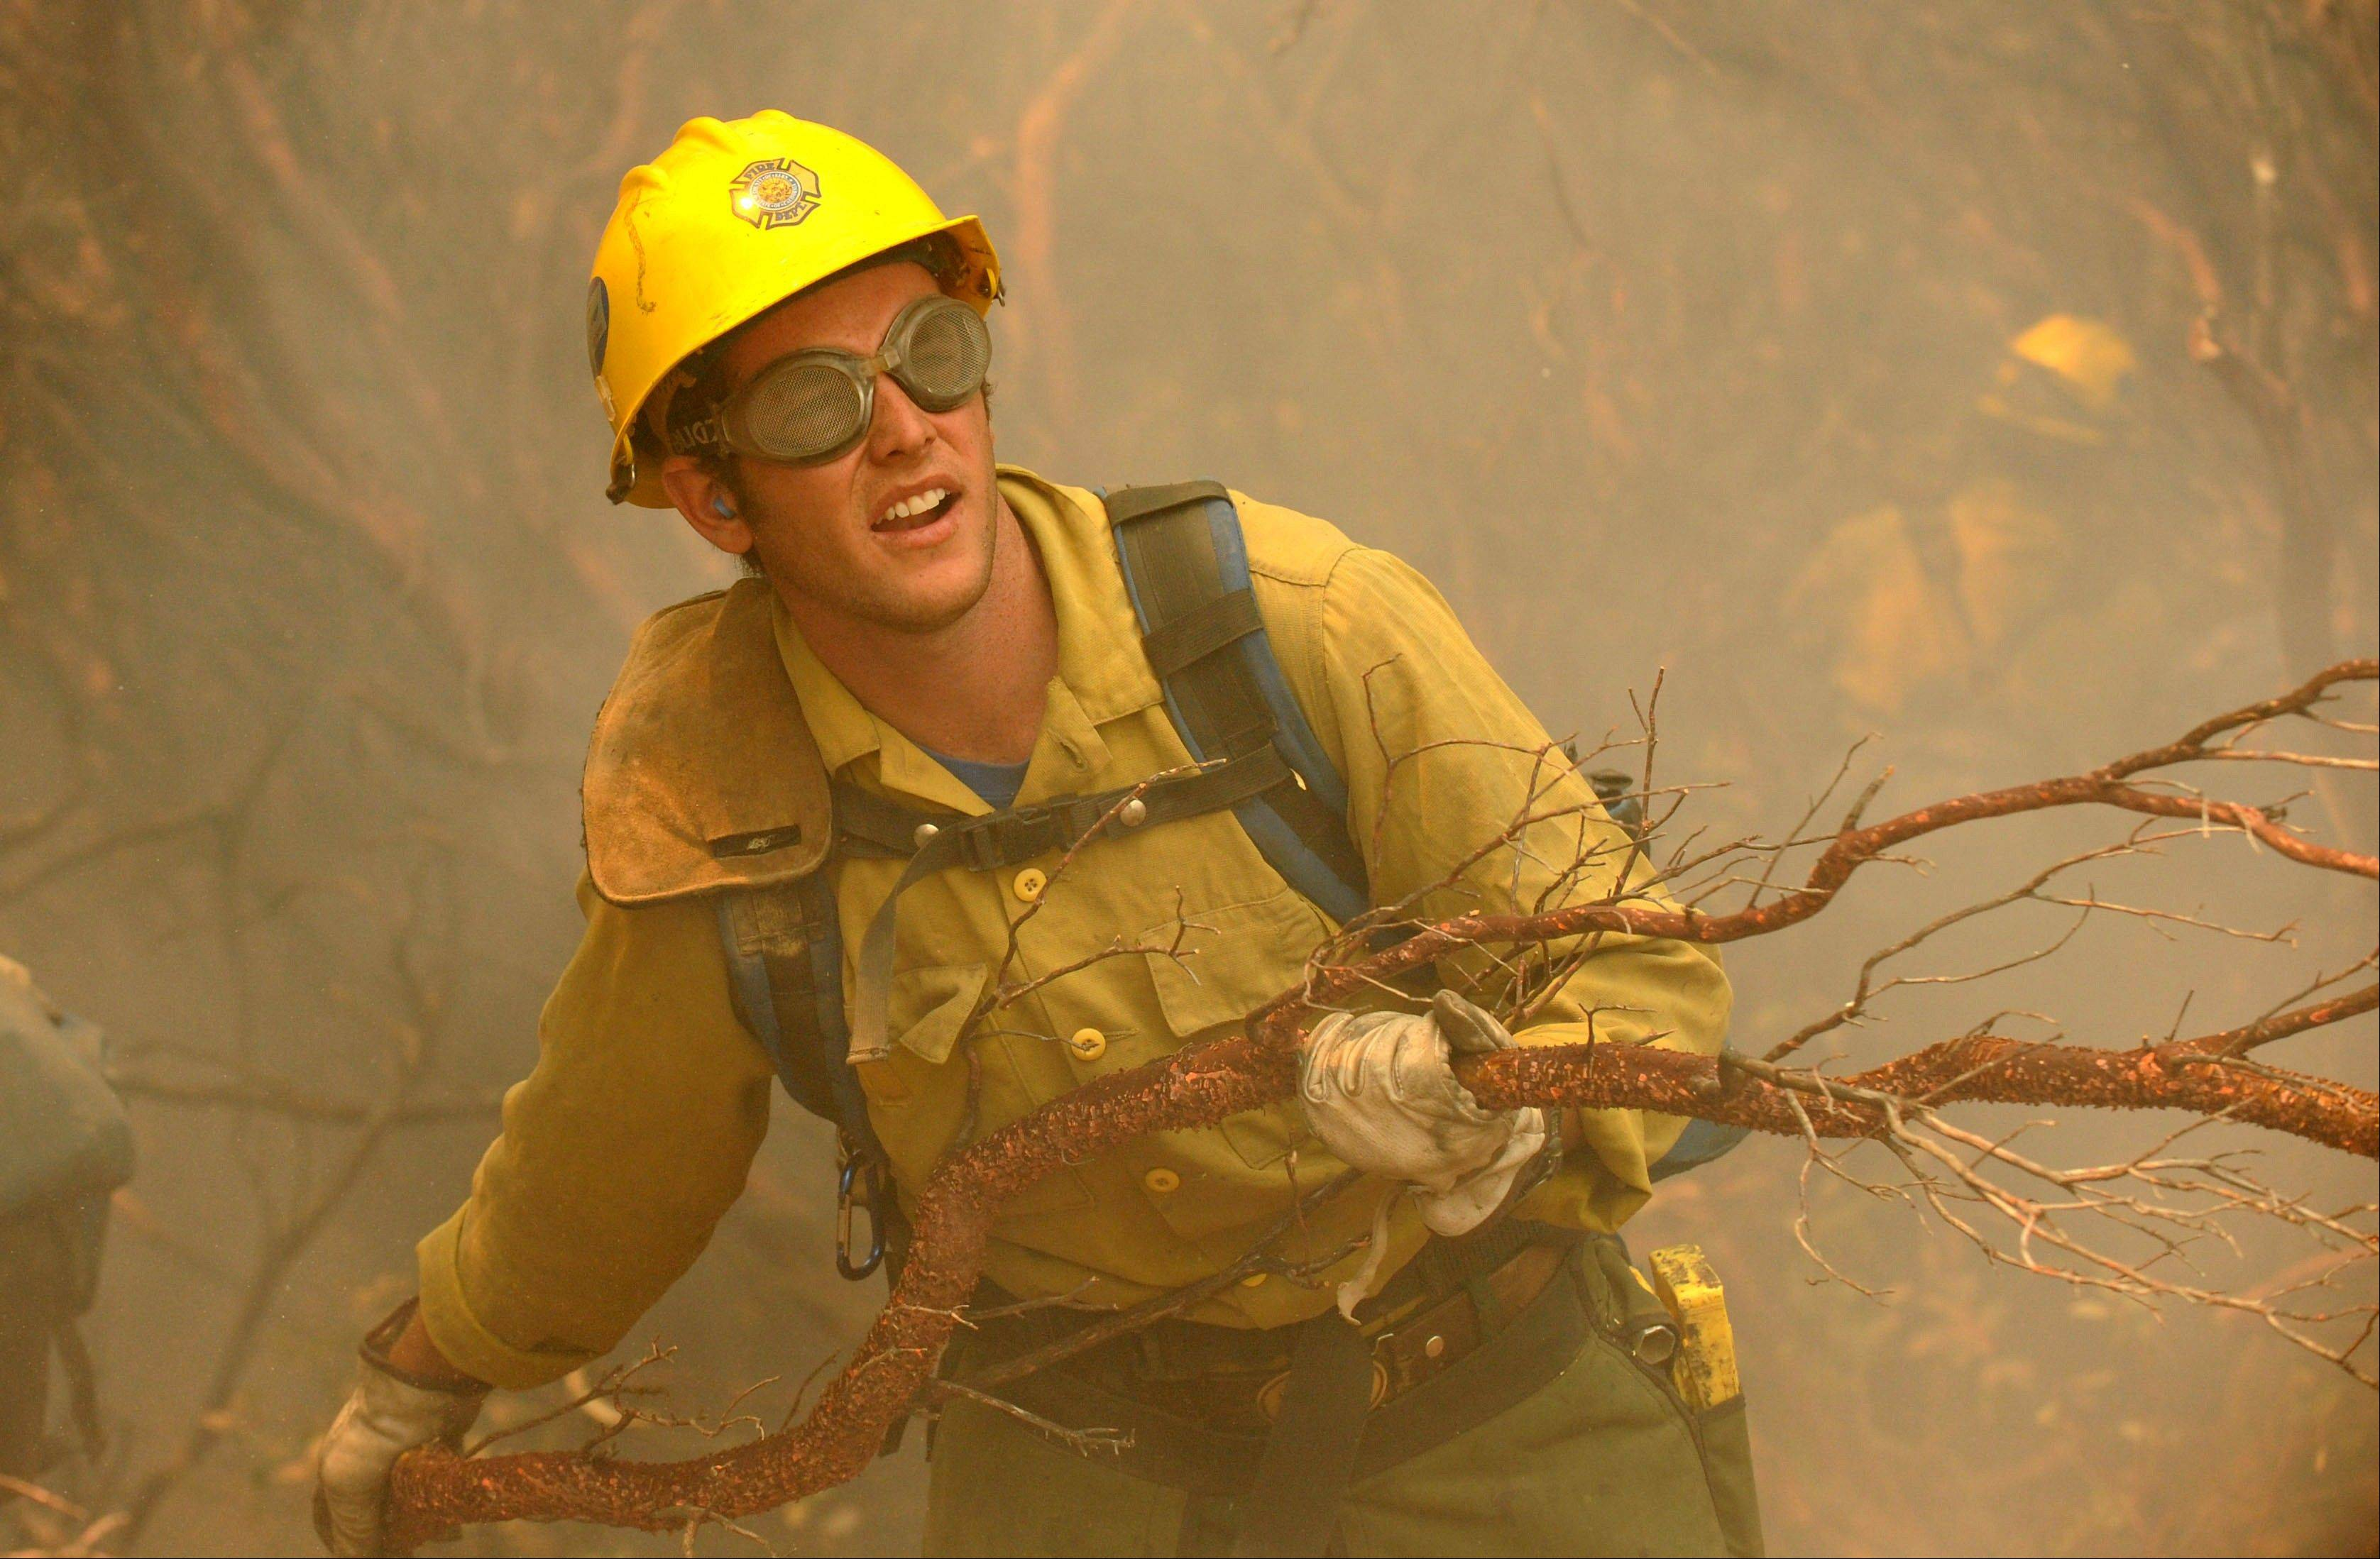 Rio Bravo Hotshot firefighter Cole Cates clears manzanita while cutting a fireline on the Telegraph Fire near Yosemite National Park in California in 2008.